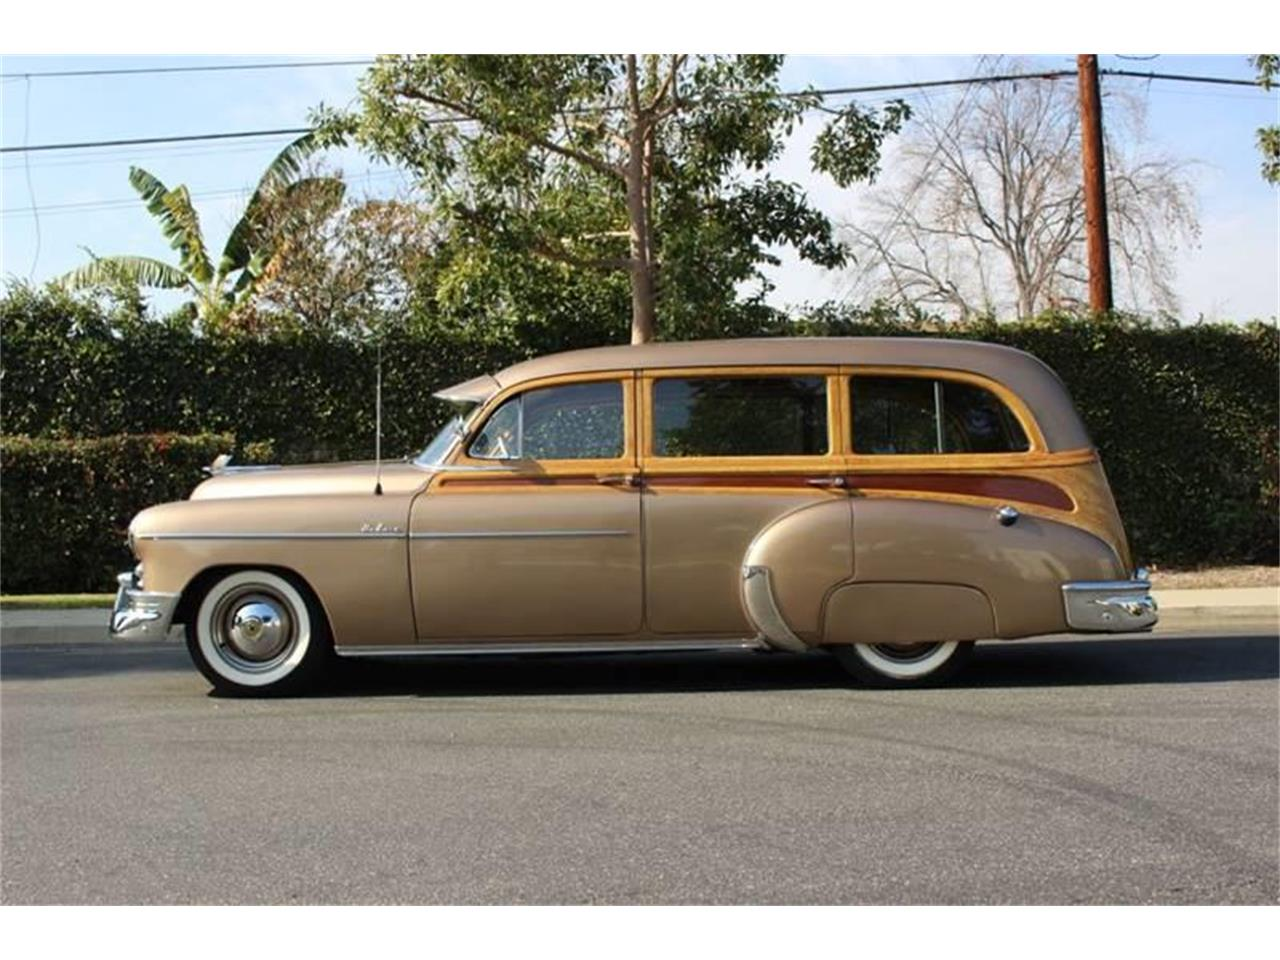 1950 Chevrolet Styleline Deluxe for sale in La Verne, CA – photo 4